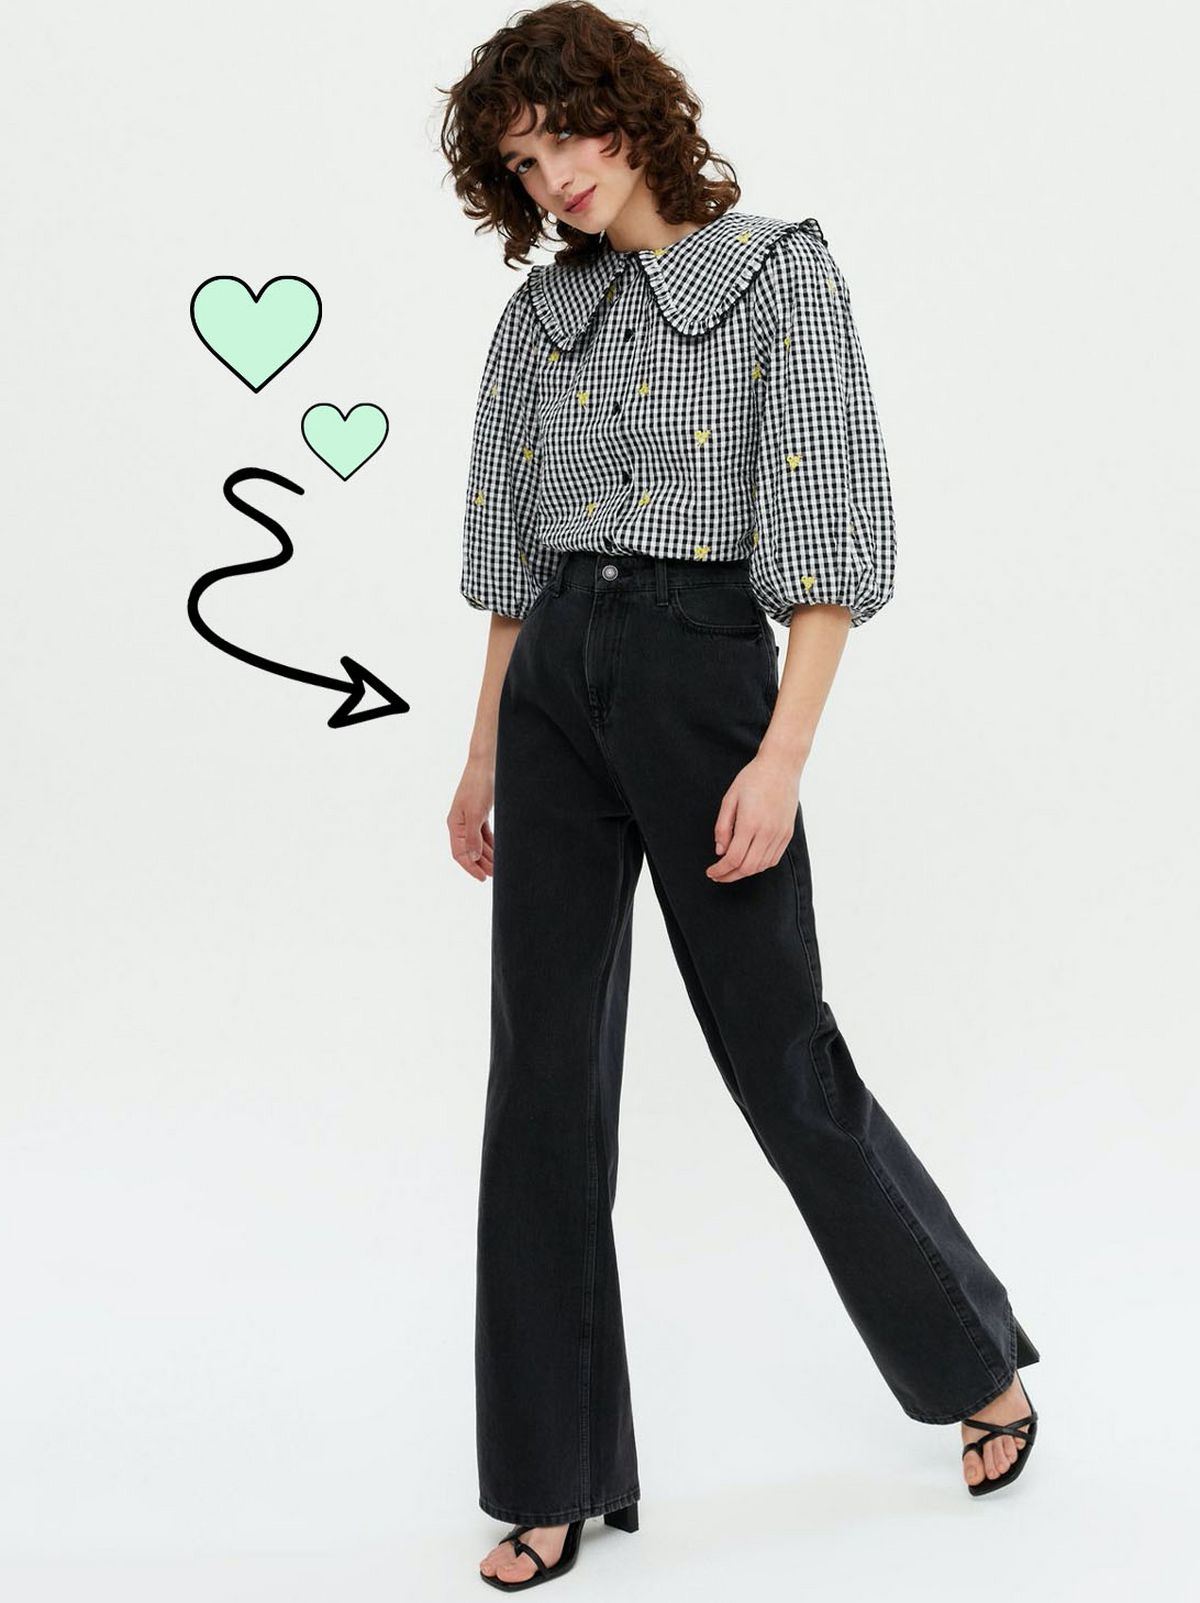 Woman wearing a black gingham frill collar shirt, black trousers and heels